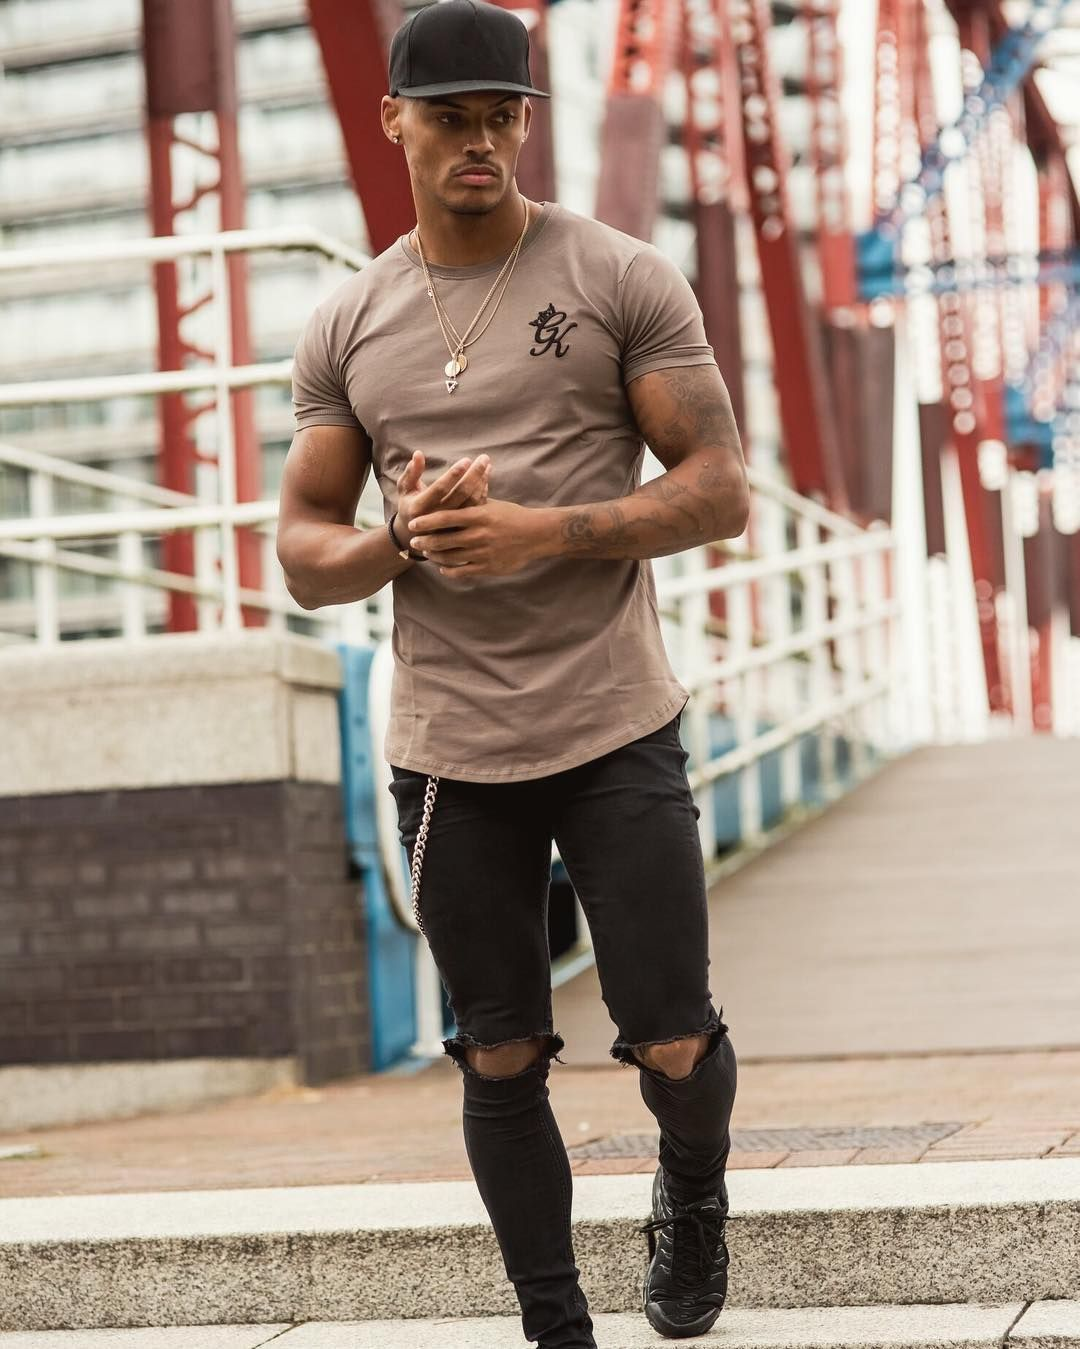 Iron Longline Tee from @gymking